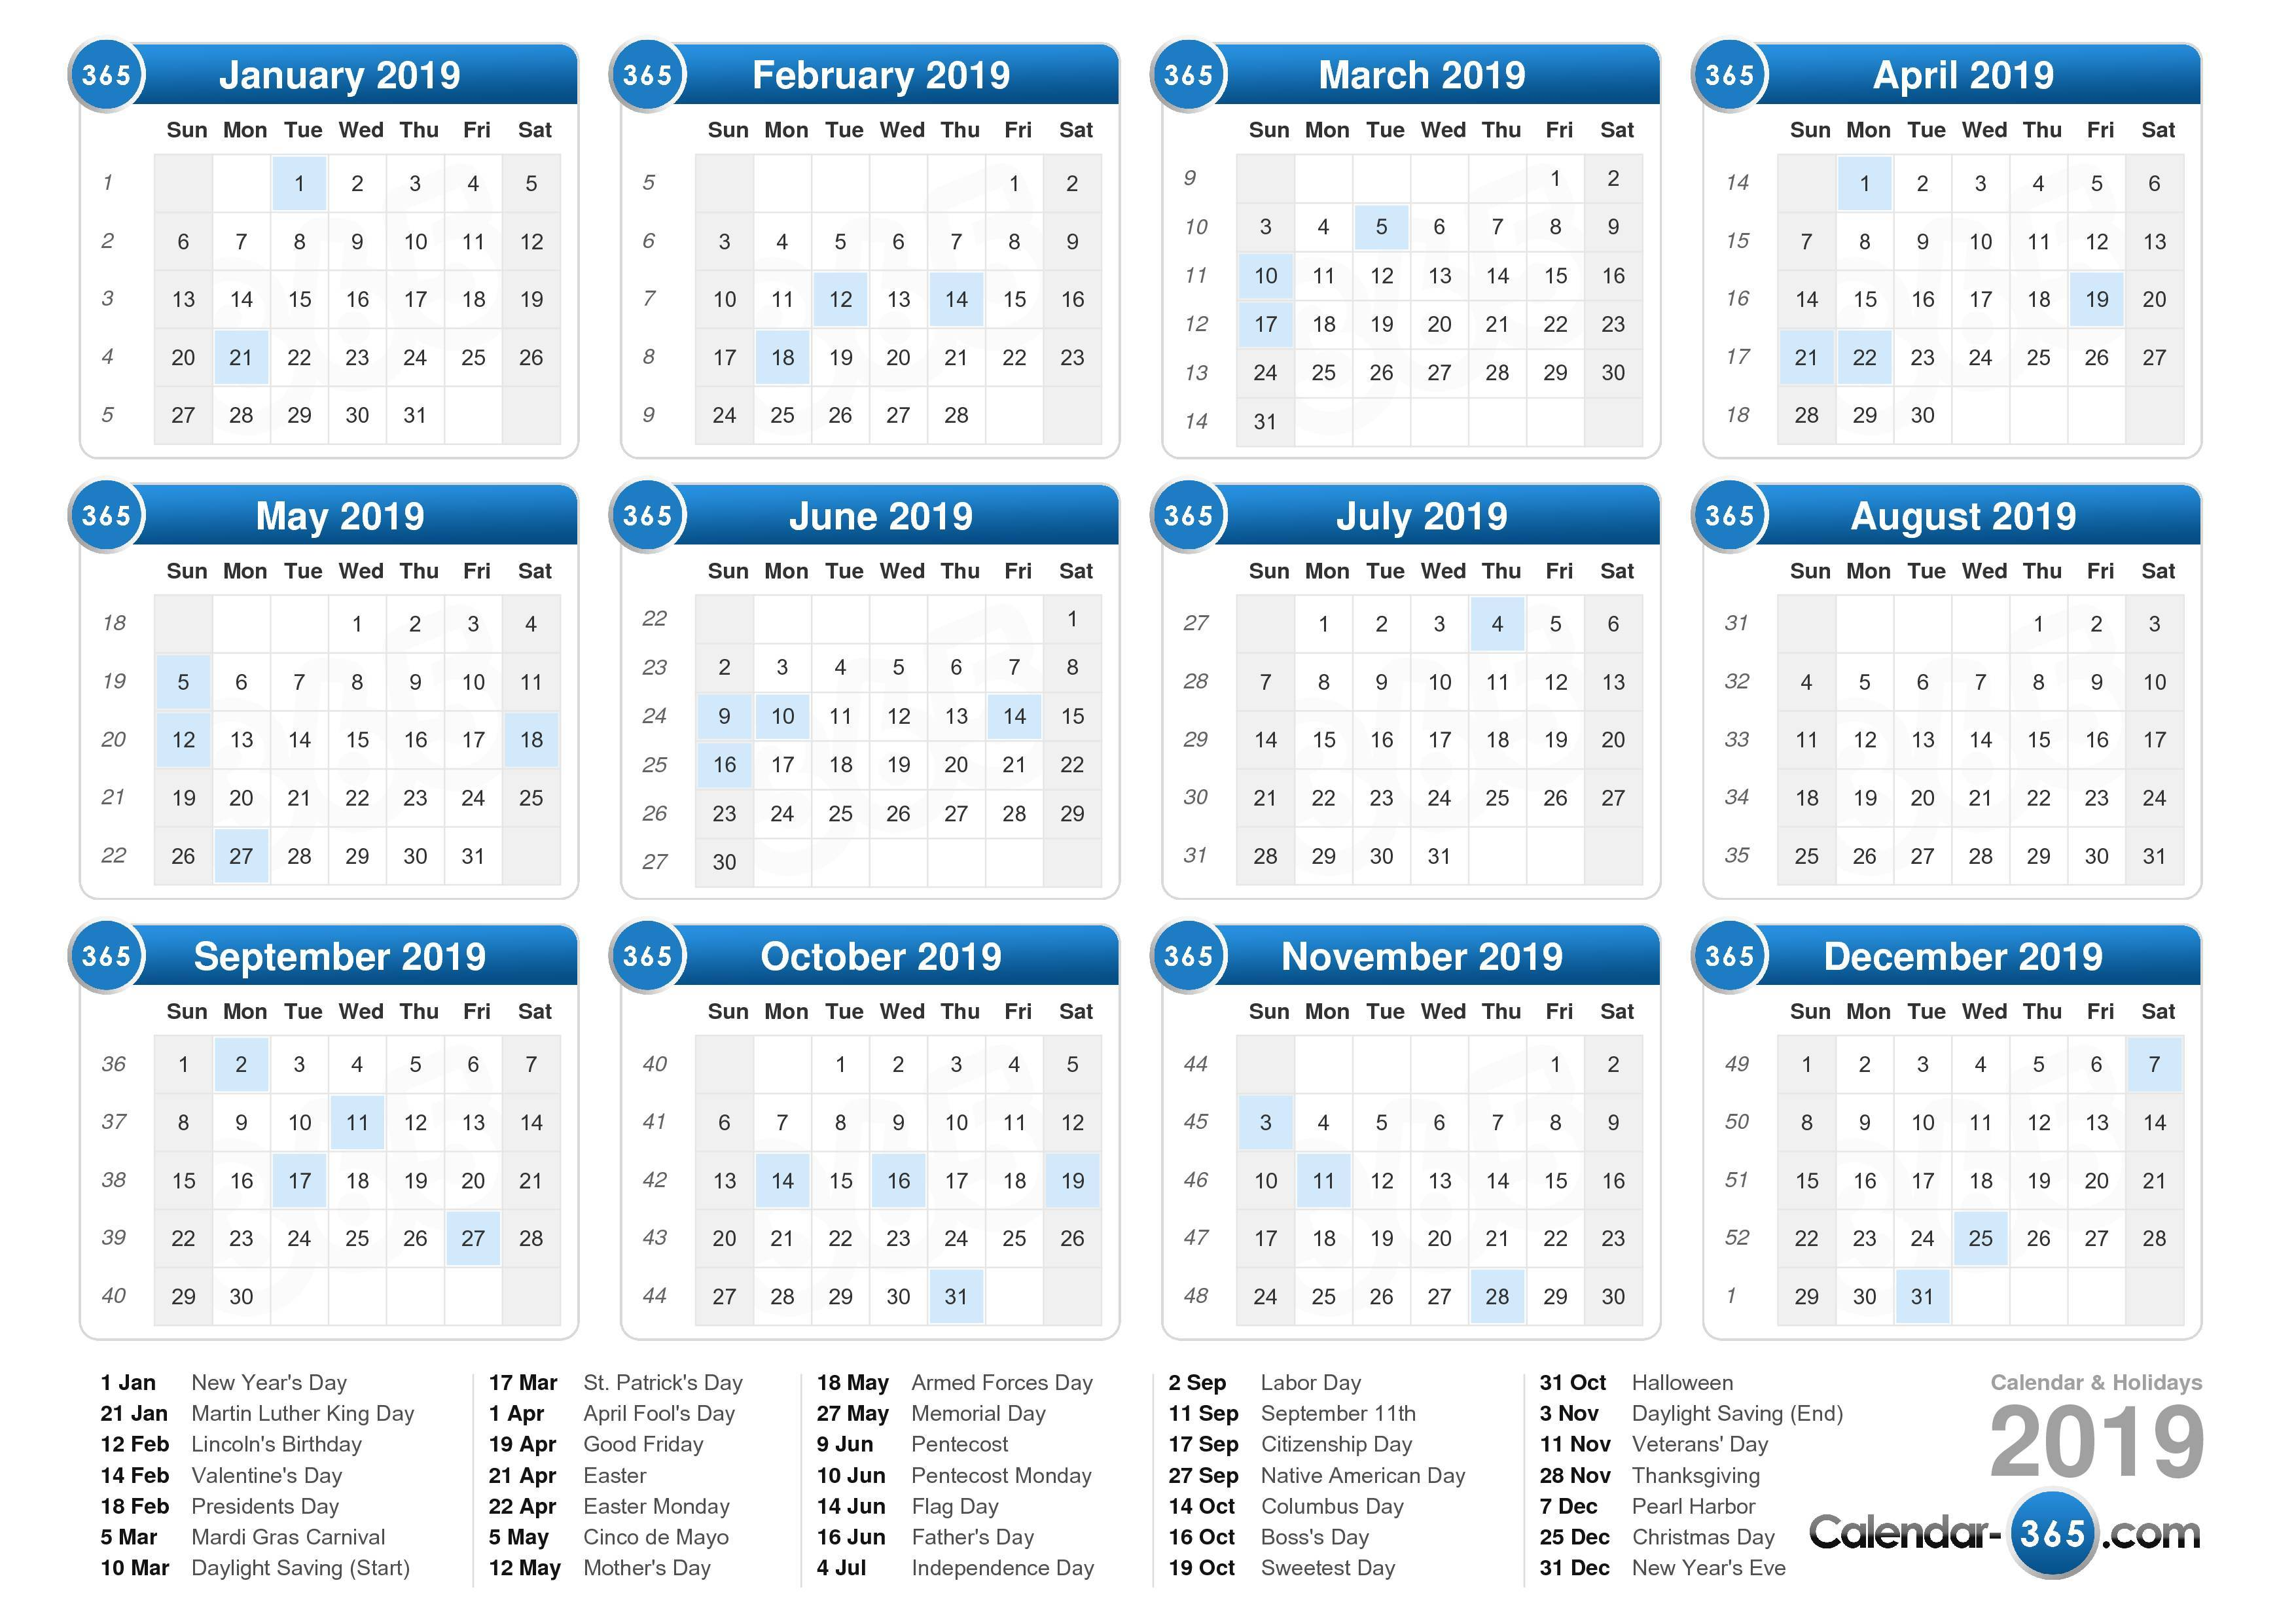 Government Fiscal Year 2019 Calendar With